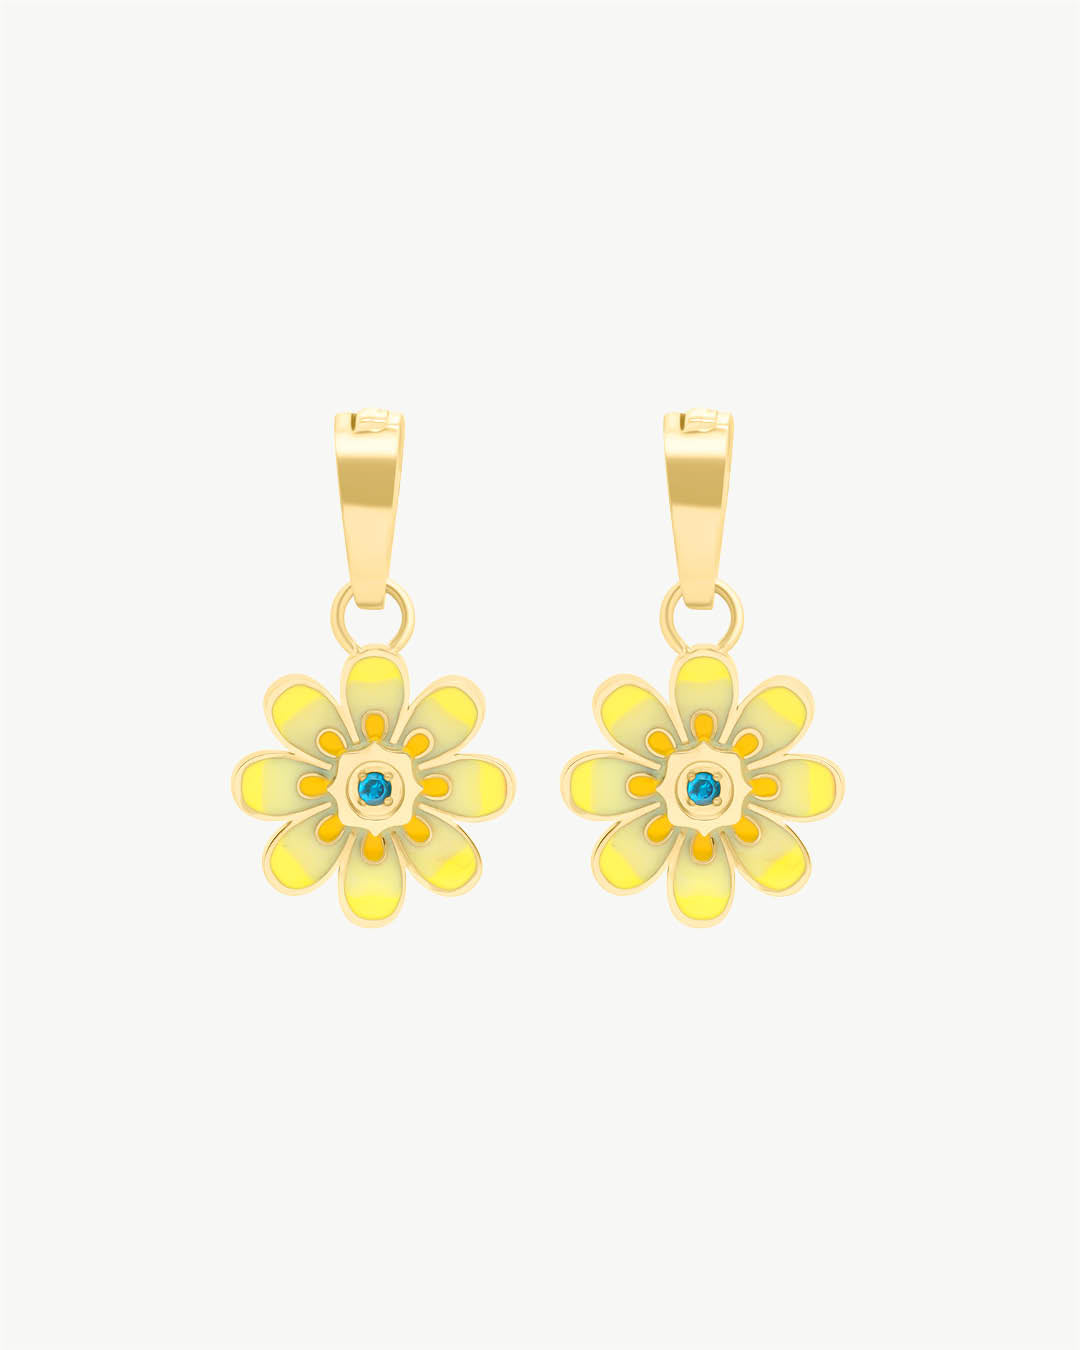 Oopsy Daisy Yellow Ohrring Anhänger, Gold